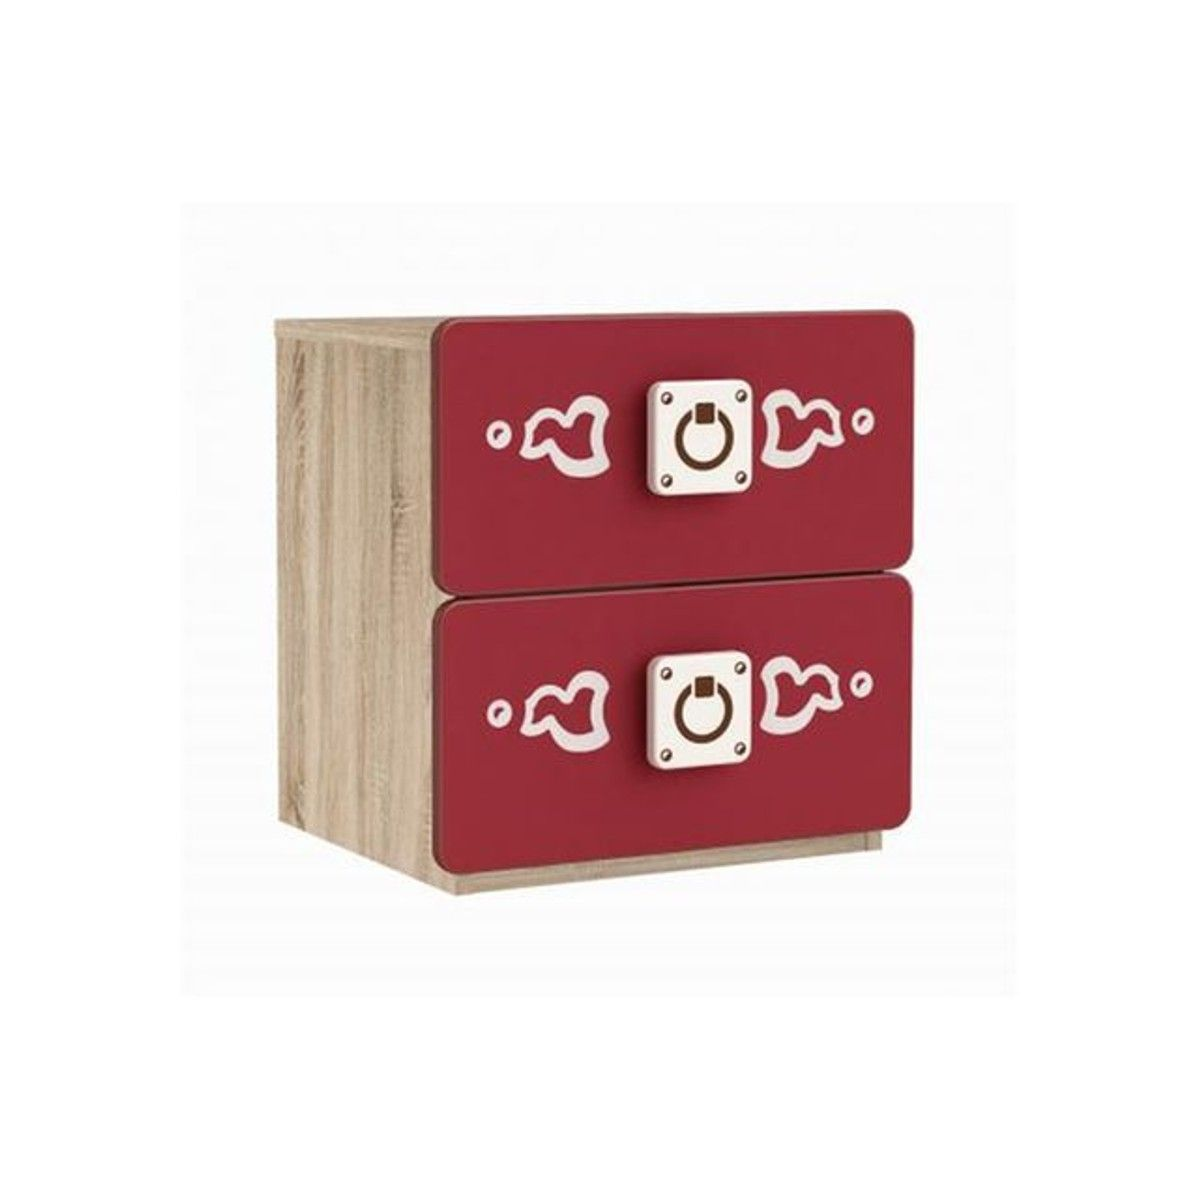 Table De Chevet Pirate table de chevet rouge motif pirate caribea | table de chevet